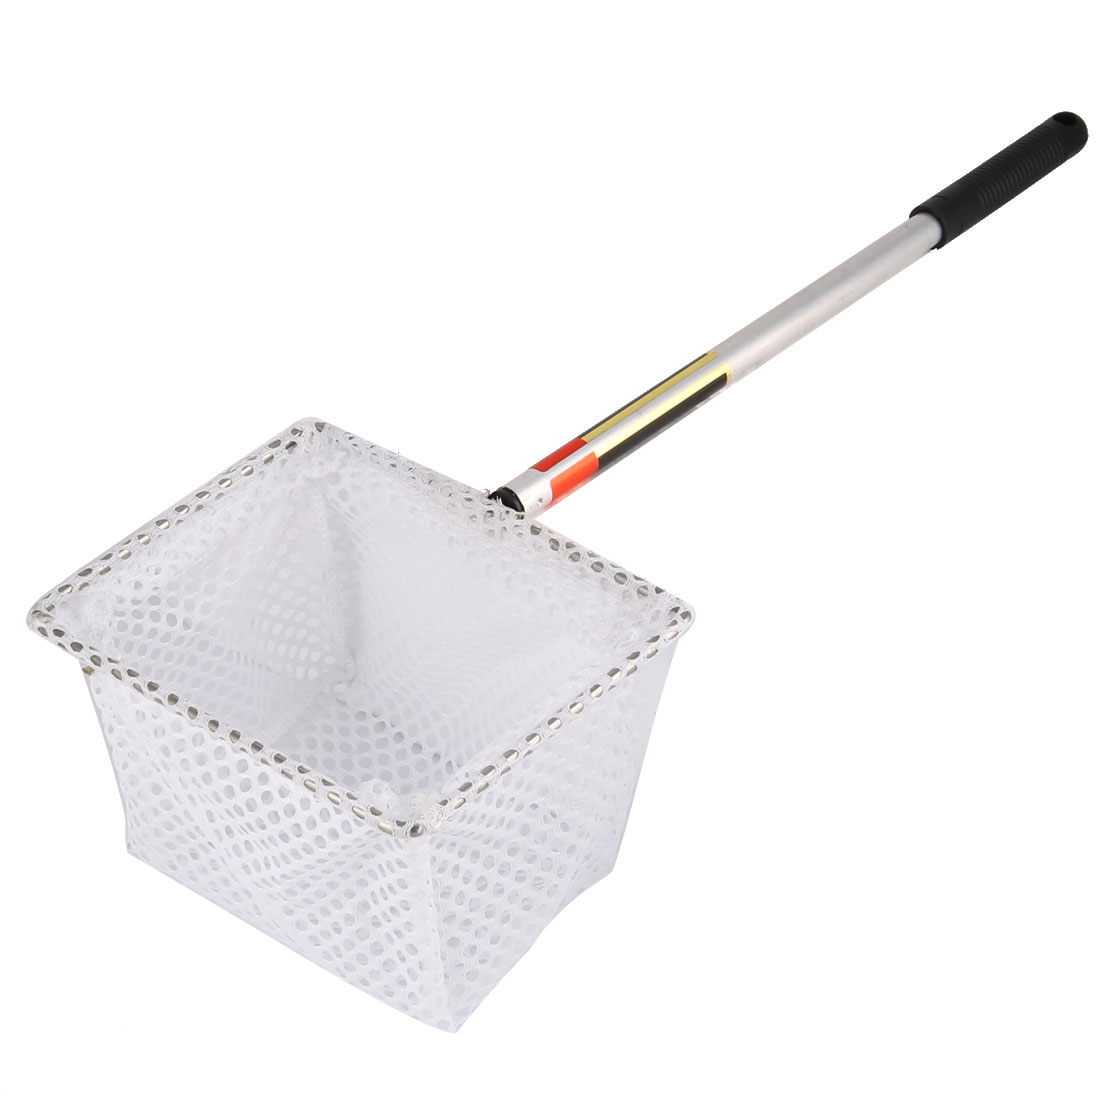 Aquarium Nylon Mesh Plastic Handle Rectangle Shrimps Fishing Angling Net White